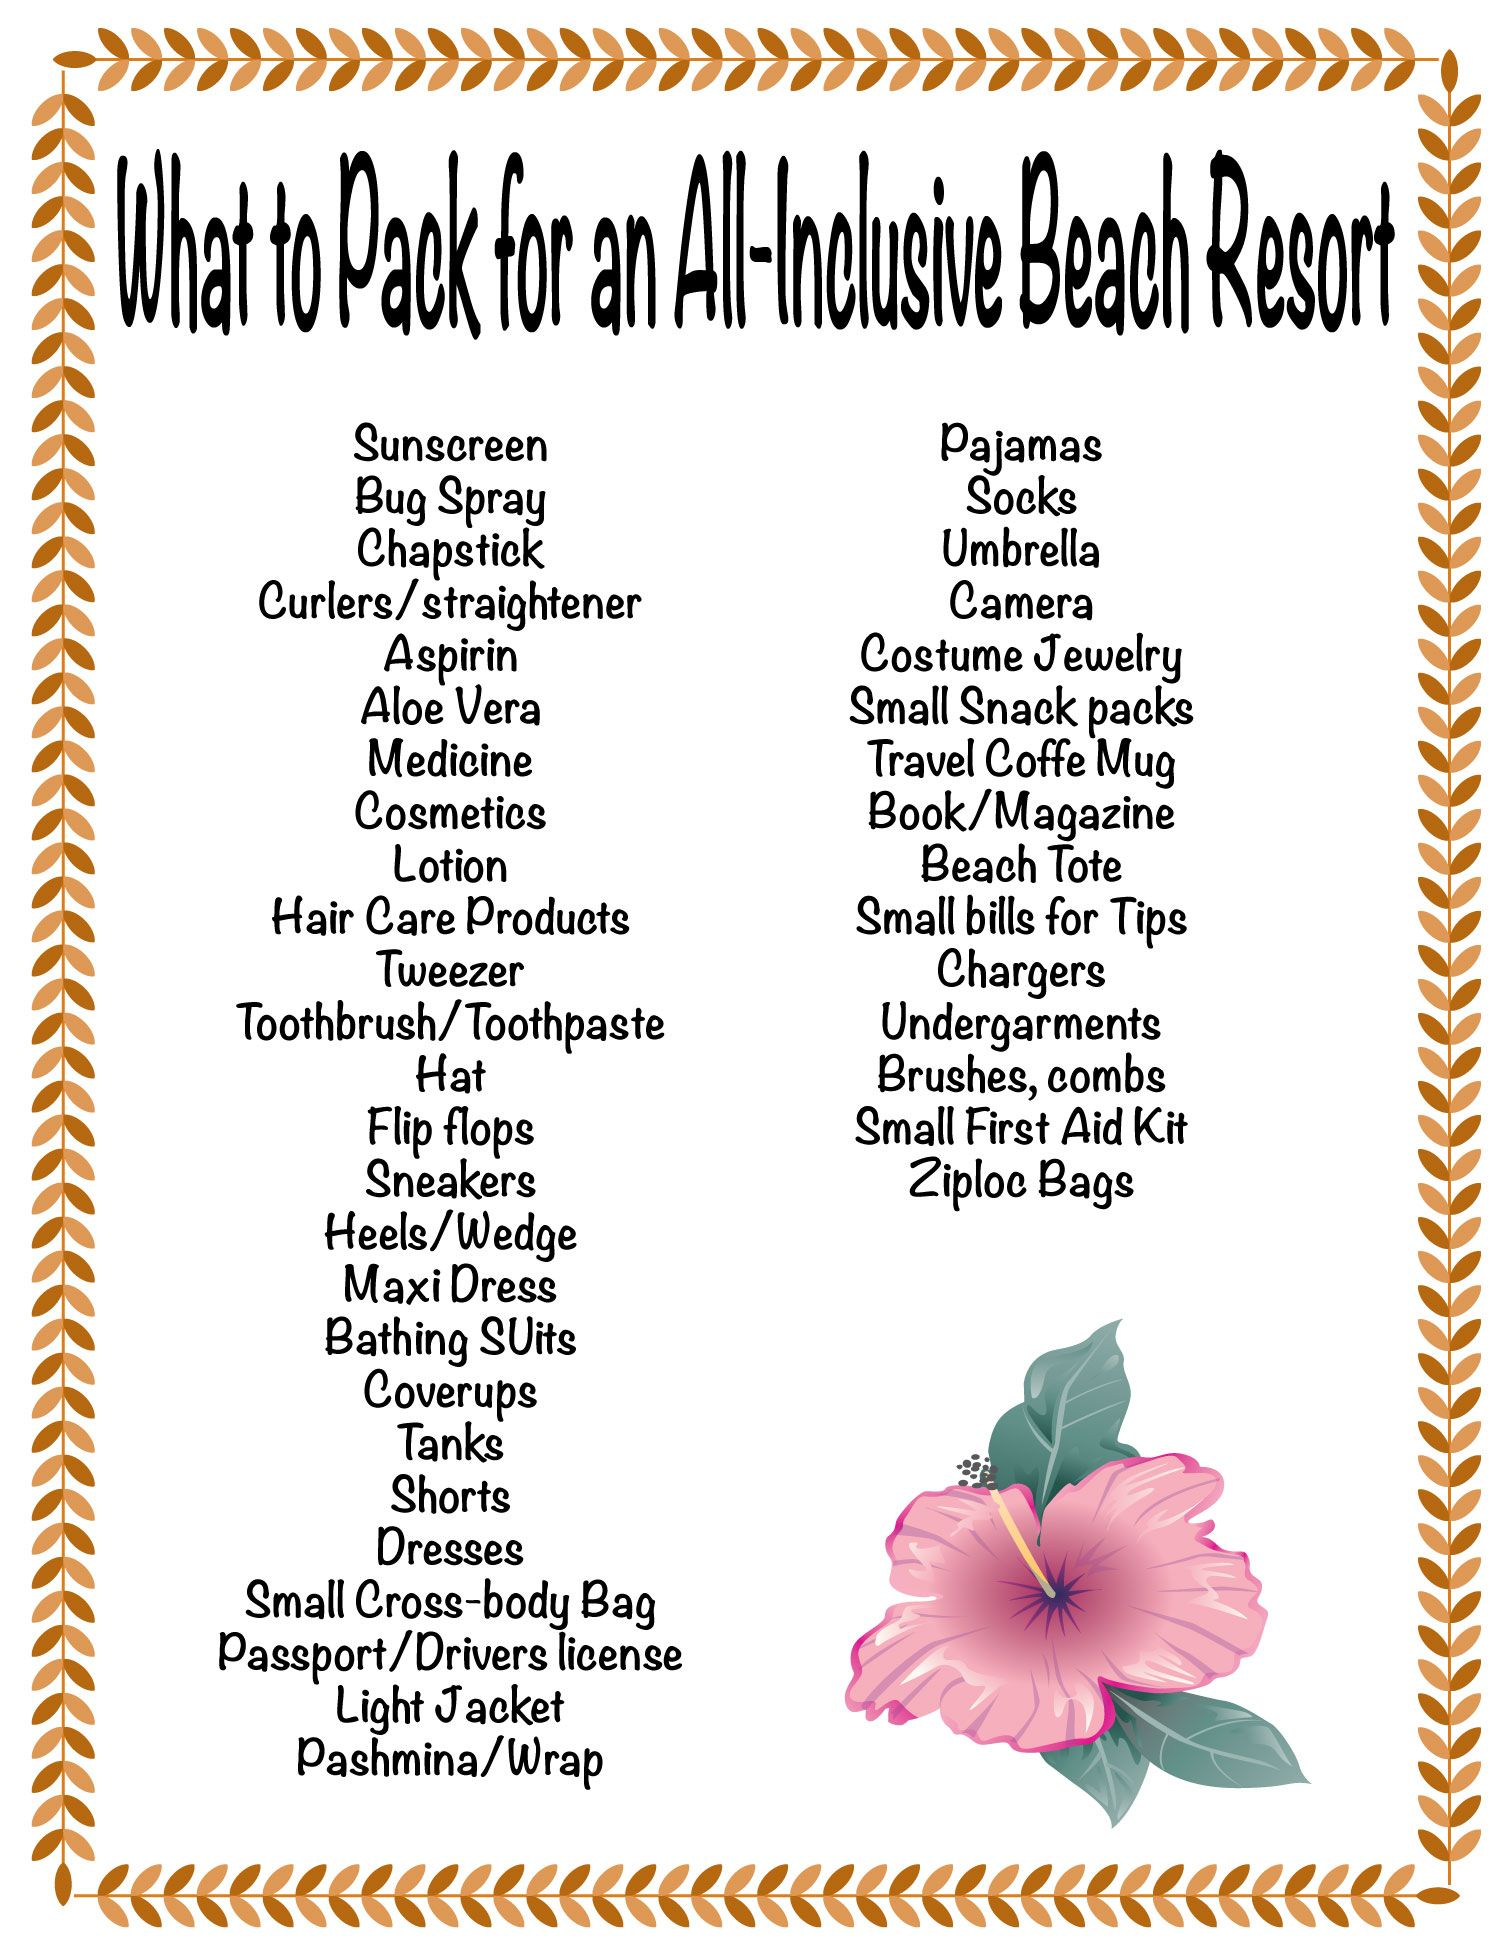 What to Pack for An AllInclusive Beach Vacation